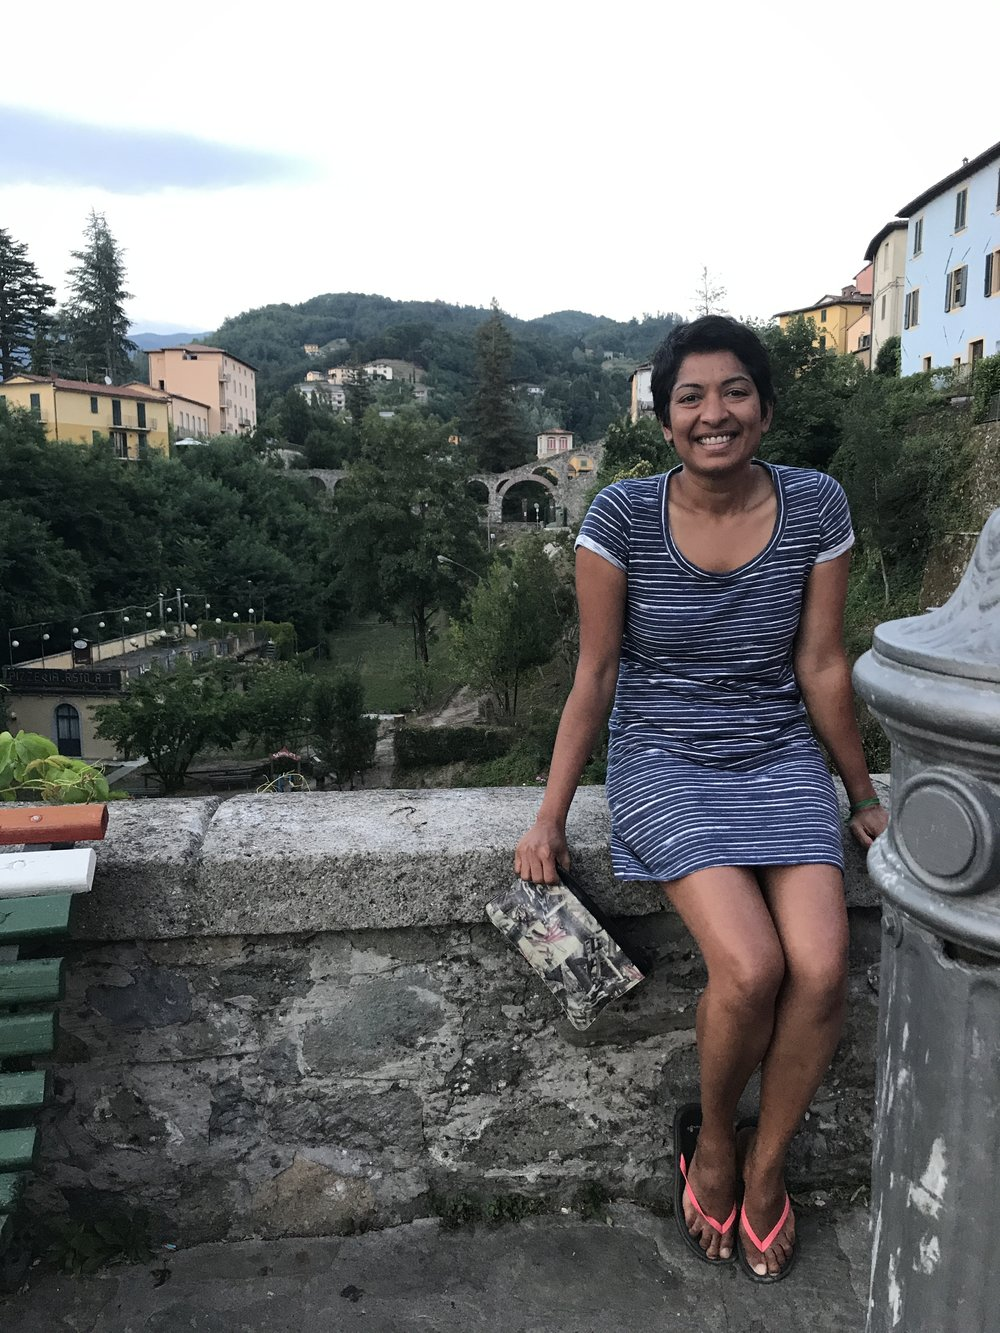 Credit: Antonella Gigli. At Barga in Garfagnana county in Italy. Thank you Antonell for hosting me and bringing me into your awesome, big life in Italia.